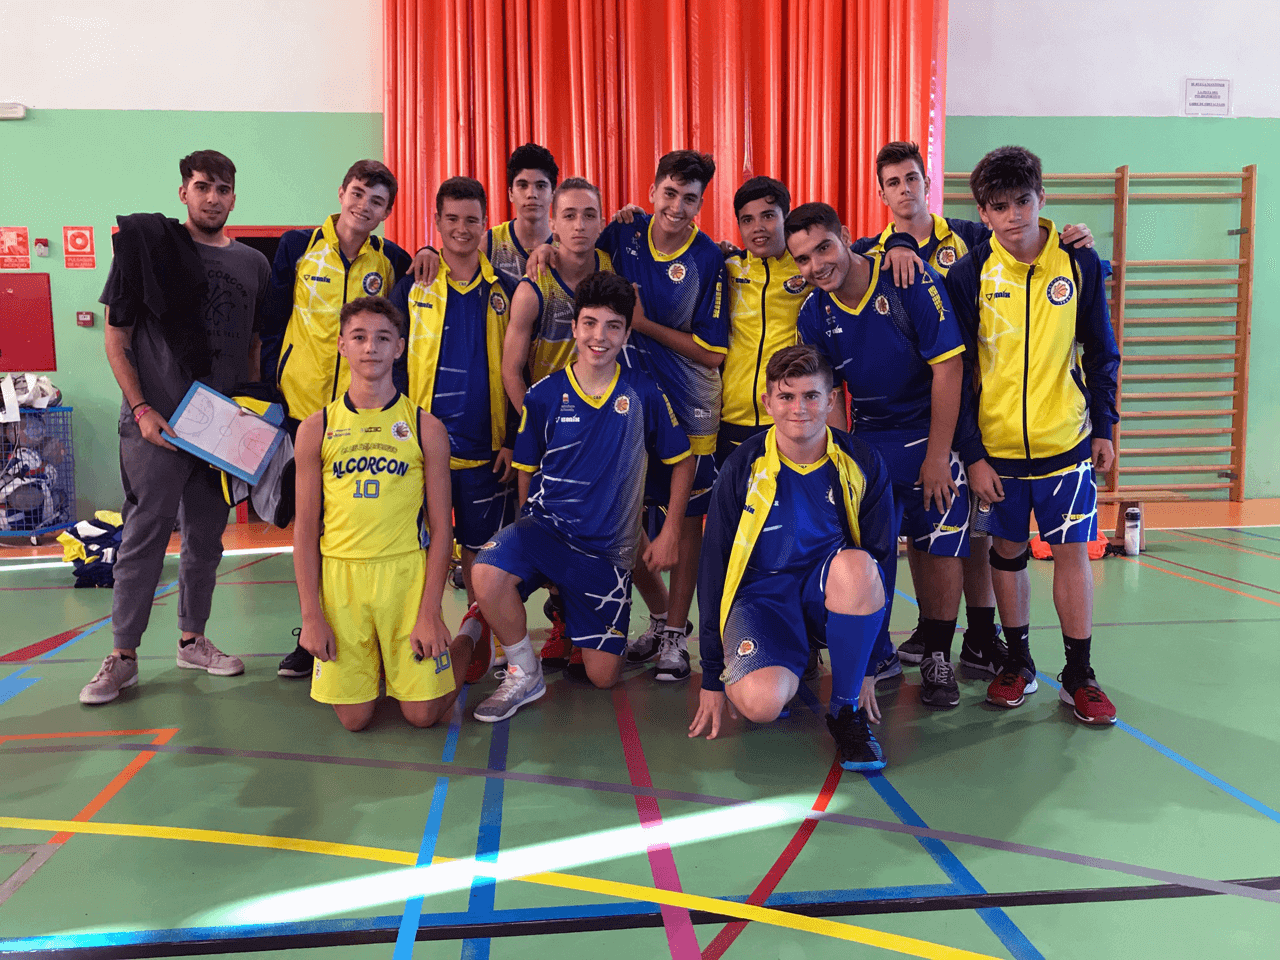 http://clubbaloncestoalcorcon.com/wp-content/uploads/2019/10/1-051019-GSDGUADARRAMA-1280-1.png